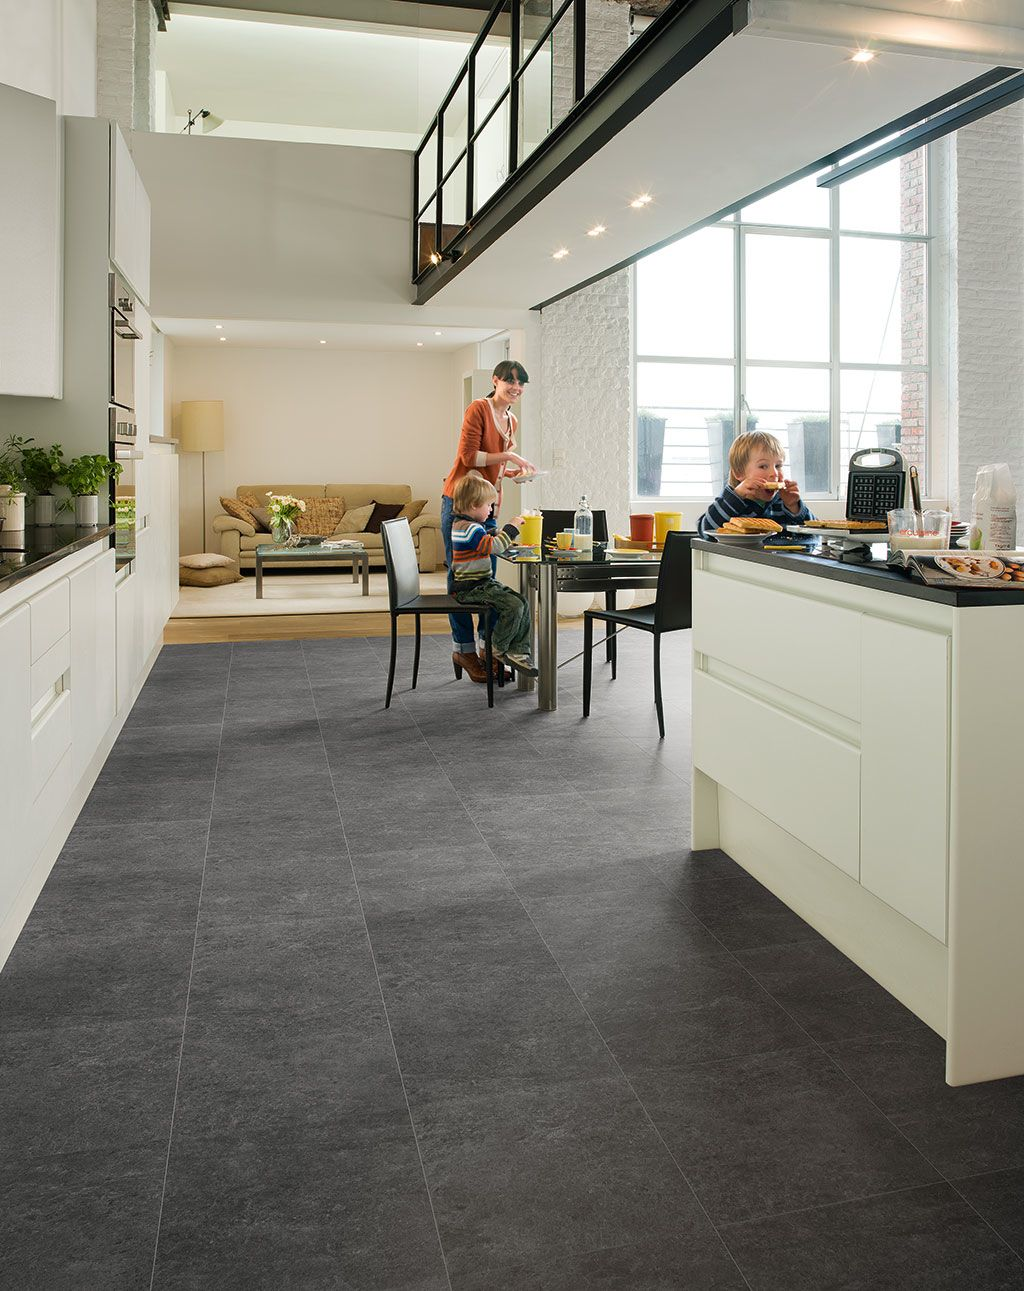 Floor quick step arte polished concrete natural laminate install floor quick step arte polished concrete natural laminate install laminate tile flooring kitchen laminate tile kitchen flooring laminate flooring over tile dailygadgetfo Image collections